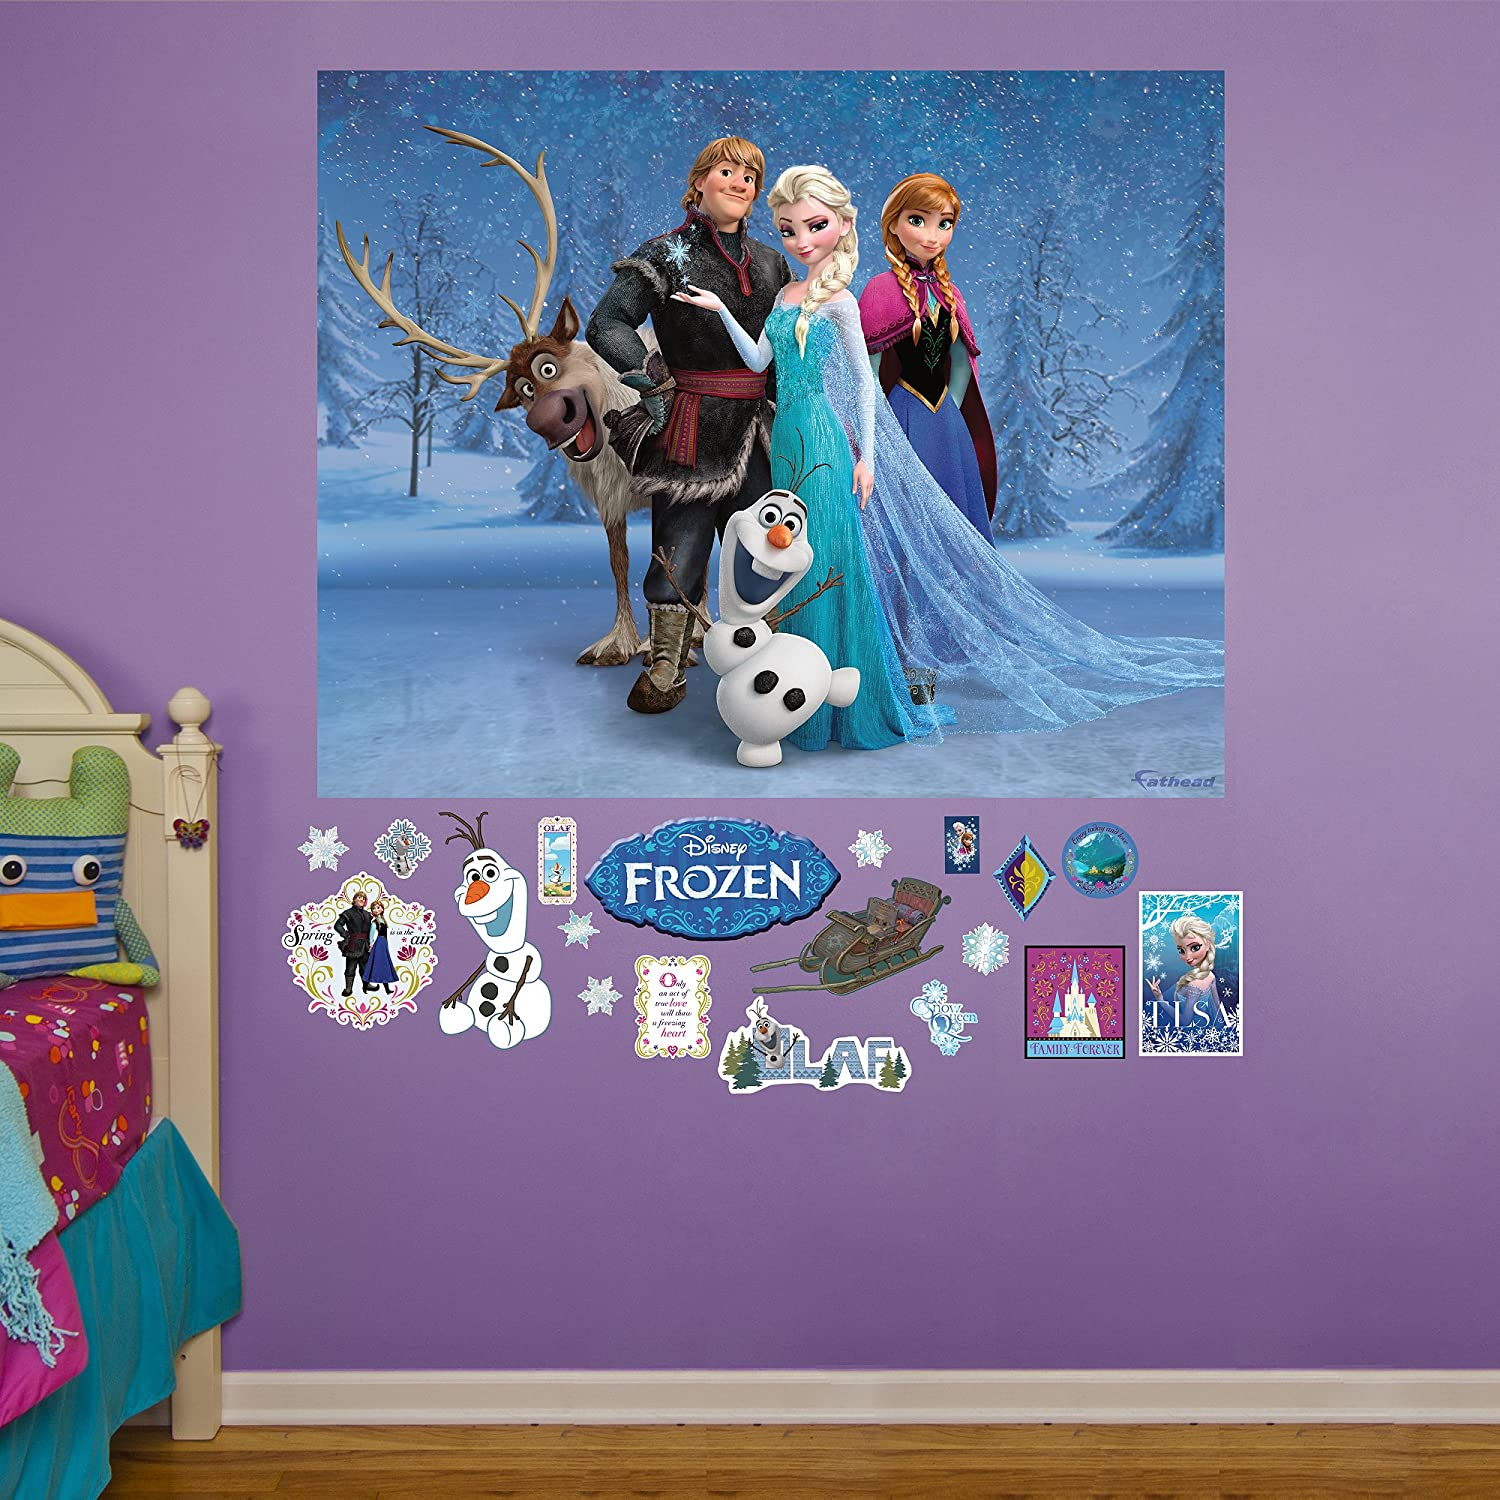 exciting disney frozen bedroom decorating ideas for your 15172 | 91z76ceg5gl sl1500